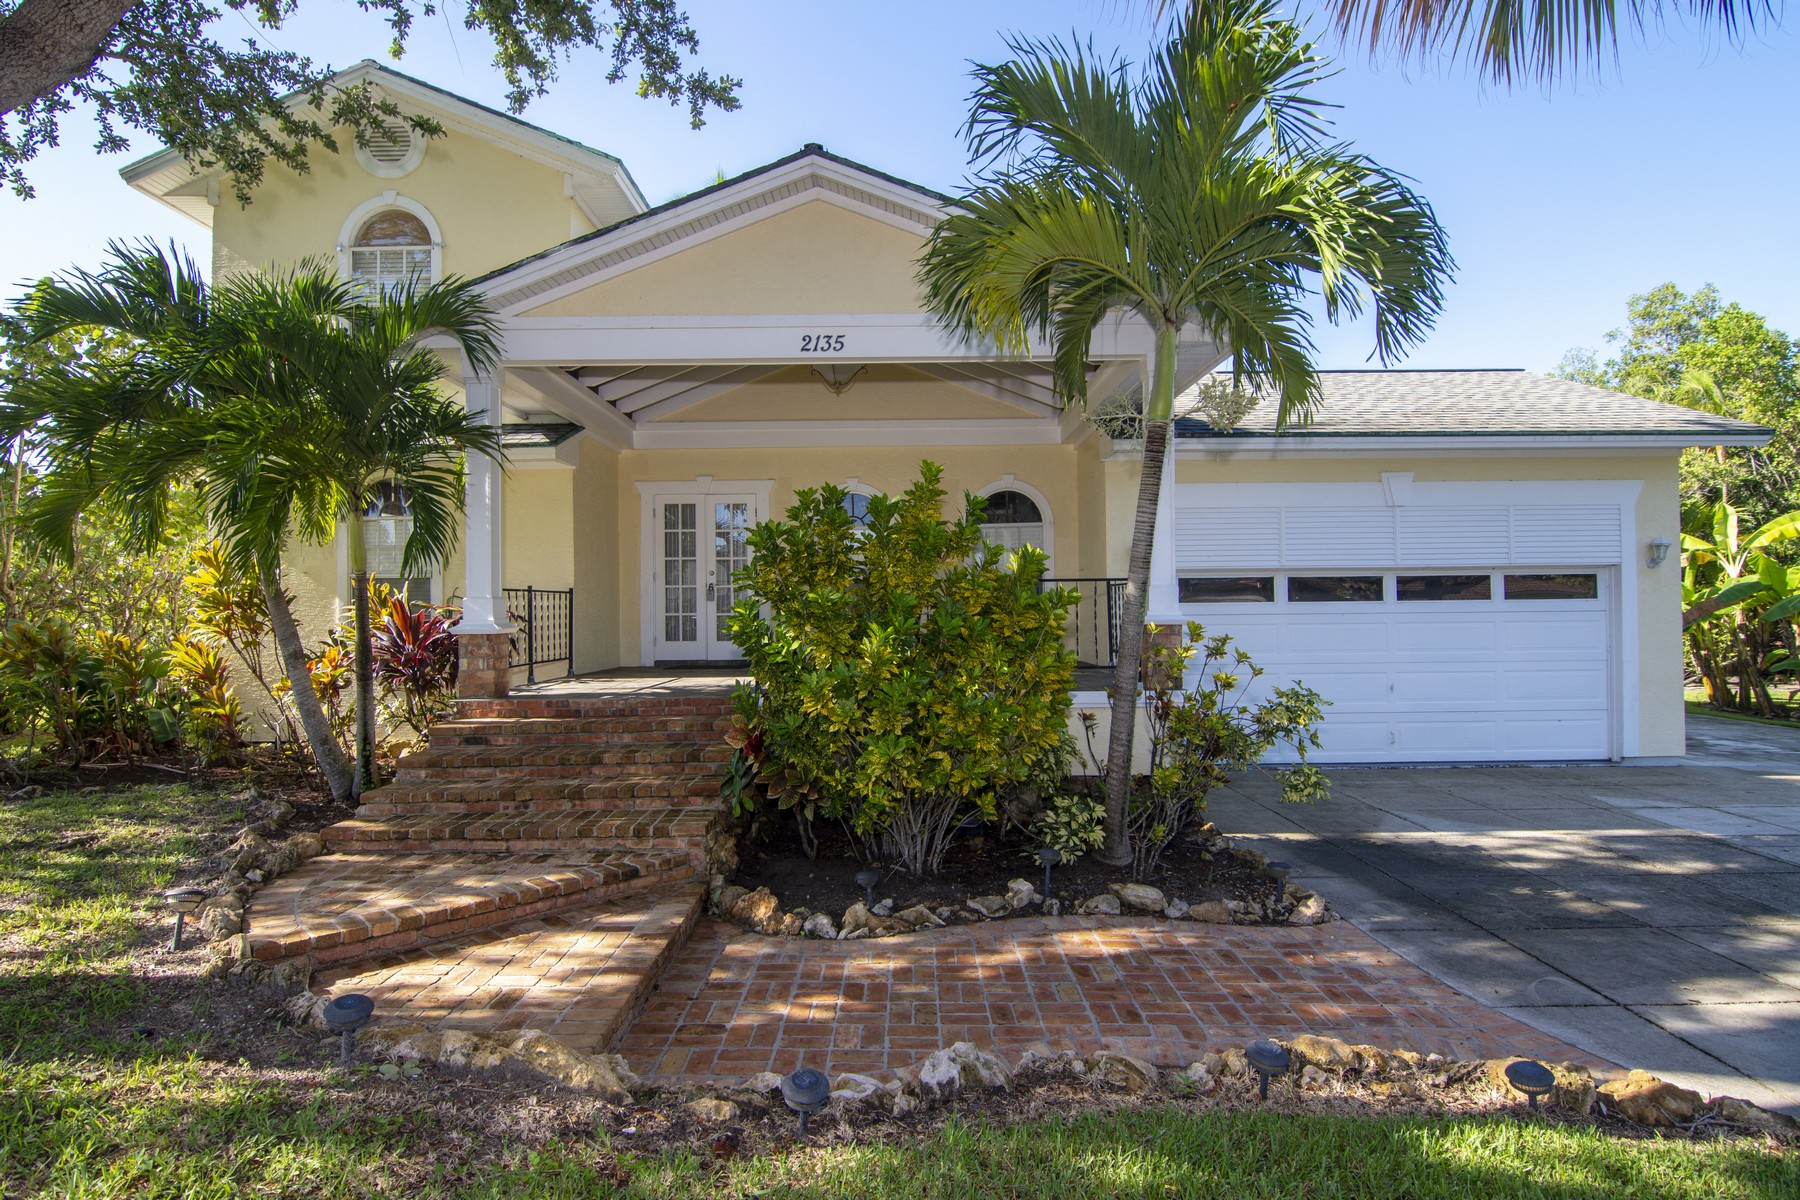 Single Family Homes for Sale at That Beach Life, Though! 2135 Seminole Shores Lane Vero Beach, Florida 32963 United States